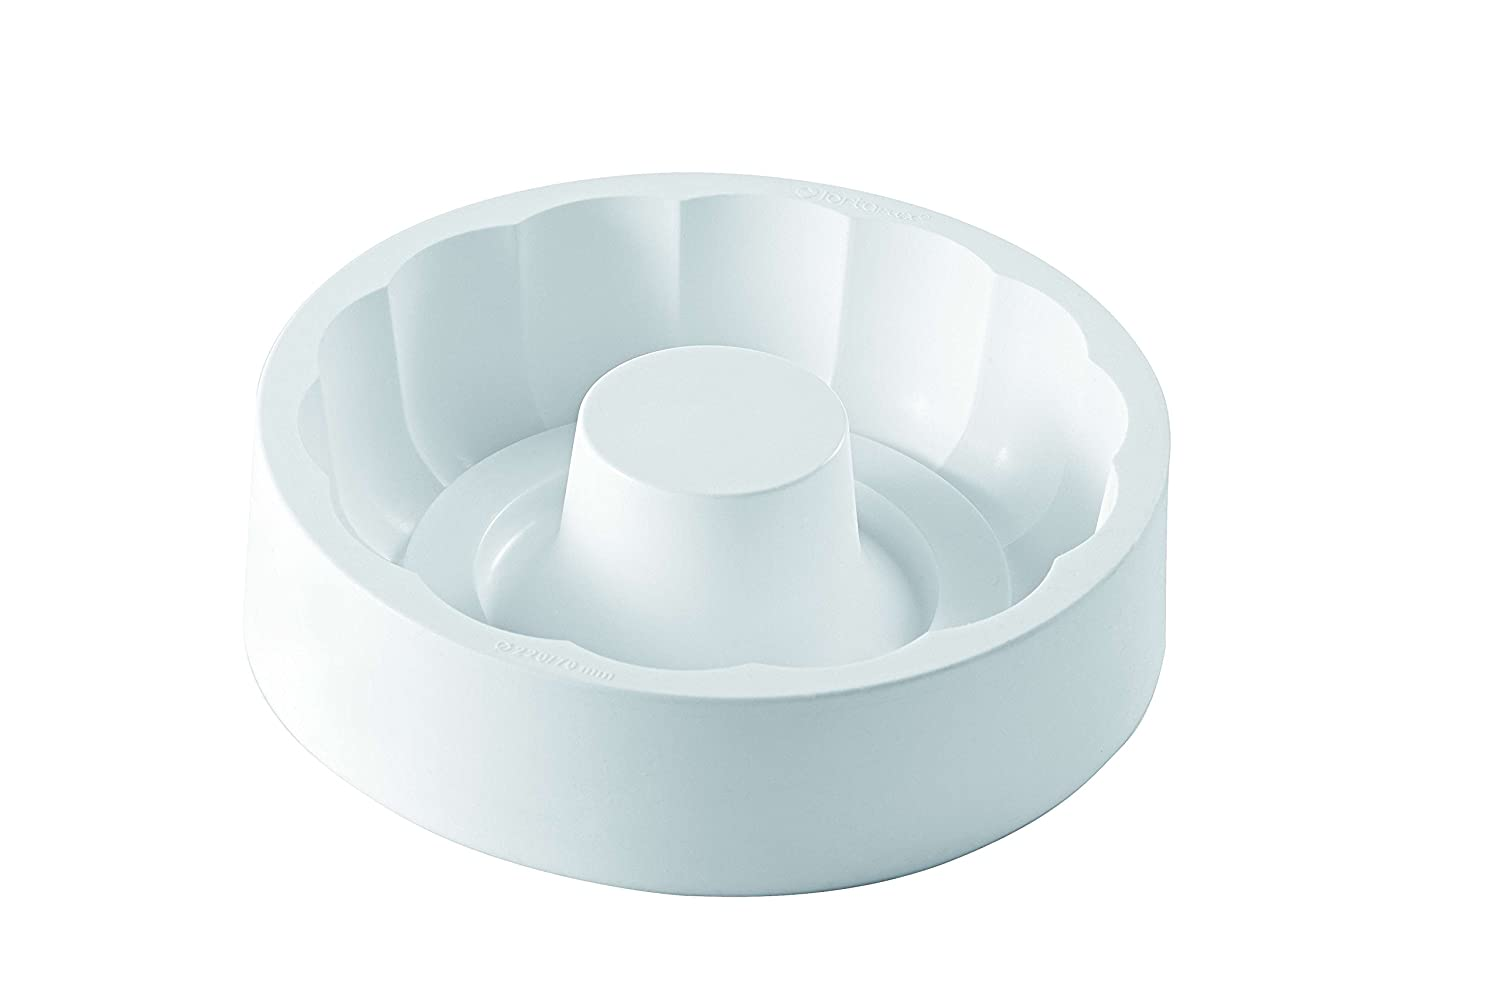 Silikomart Silicone Fancy and Function Bakeware Collection Tube Cake Pan, Armony